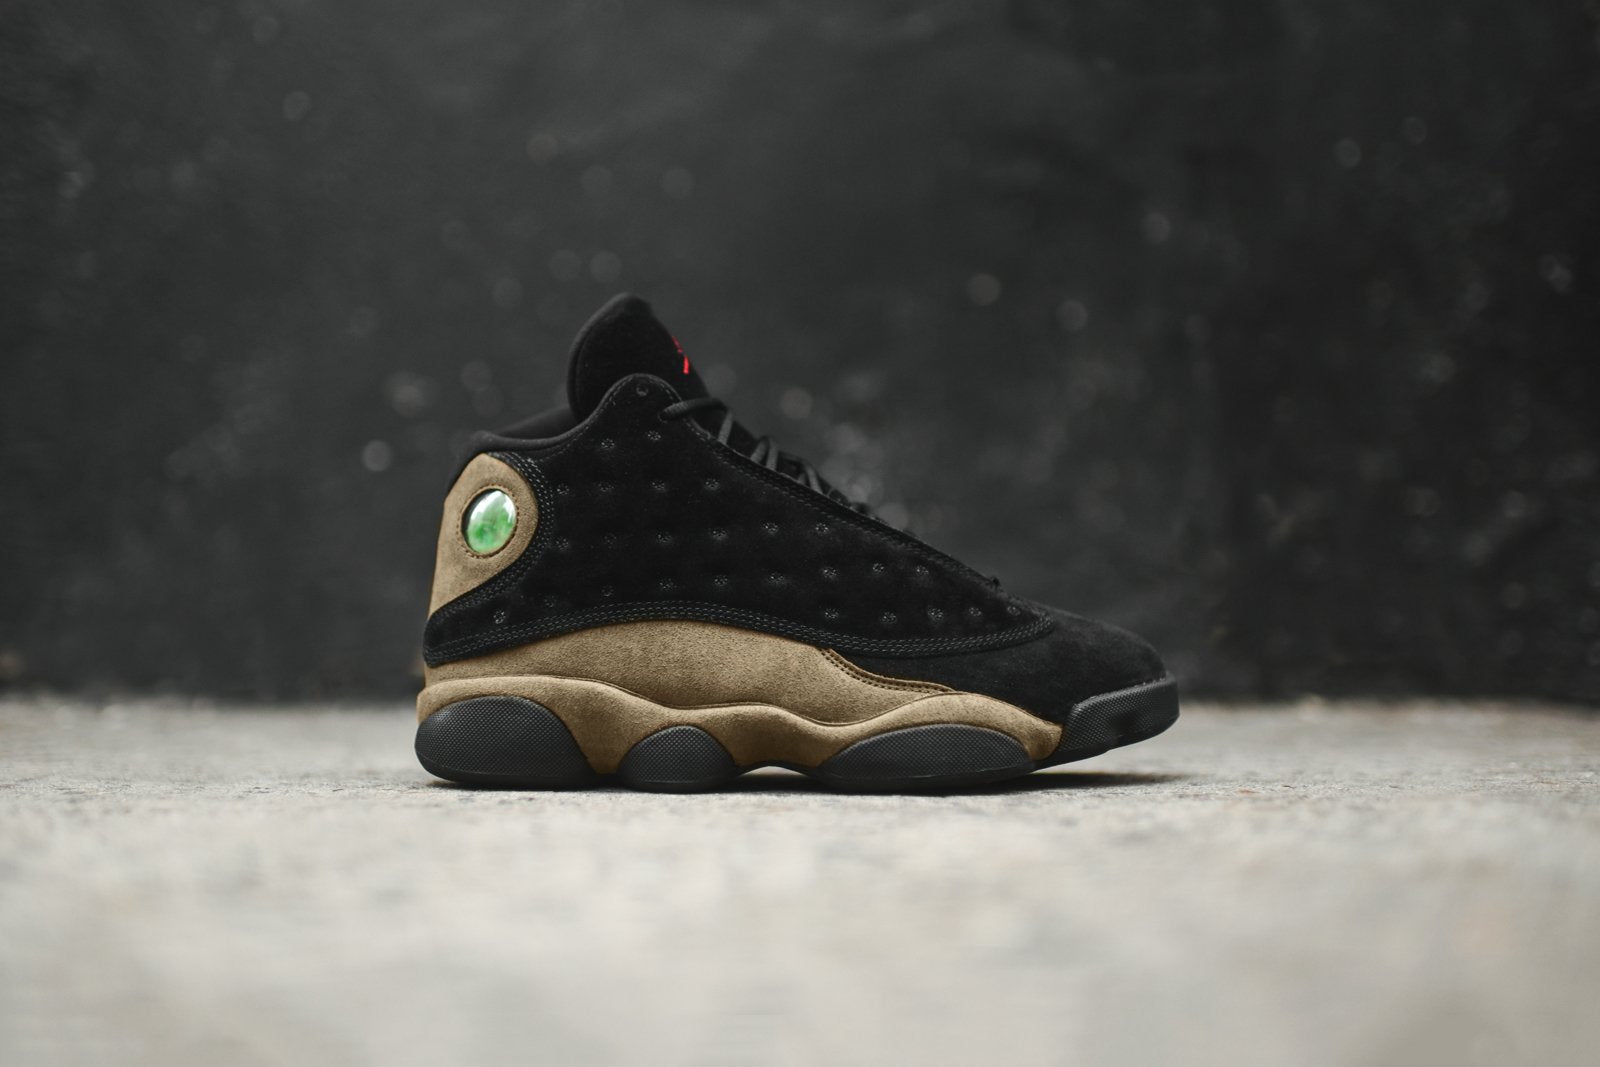 1ccea56f4b1737 Nike Air Jordan 13 Retro - Black   Olive. January 20